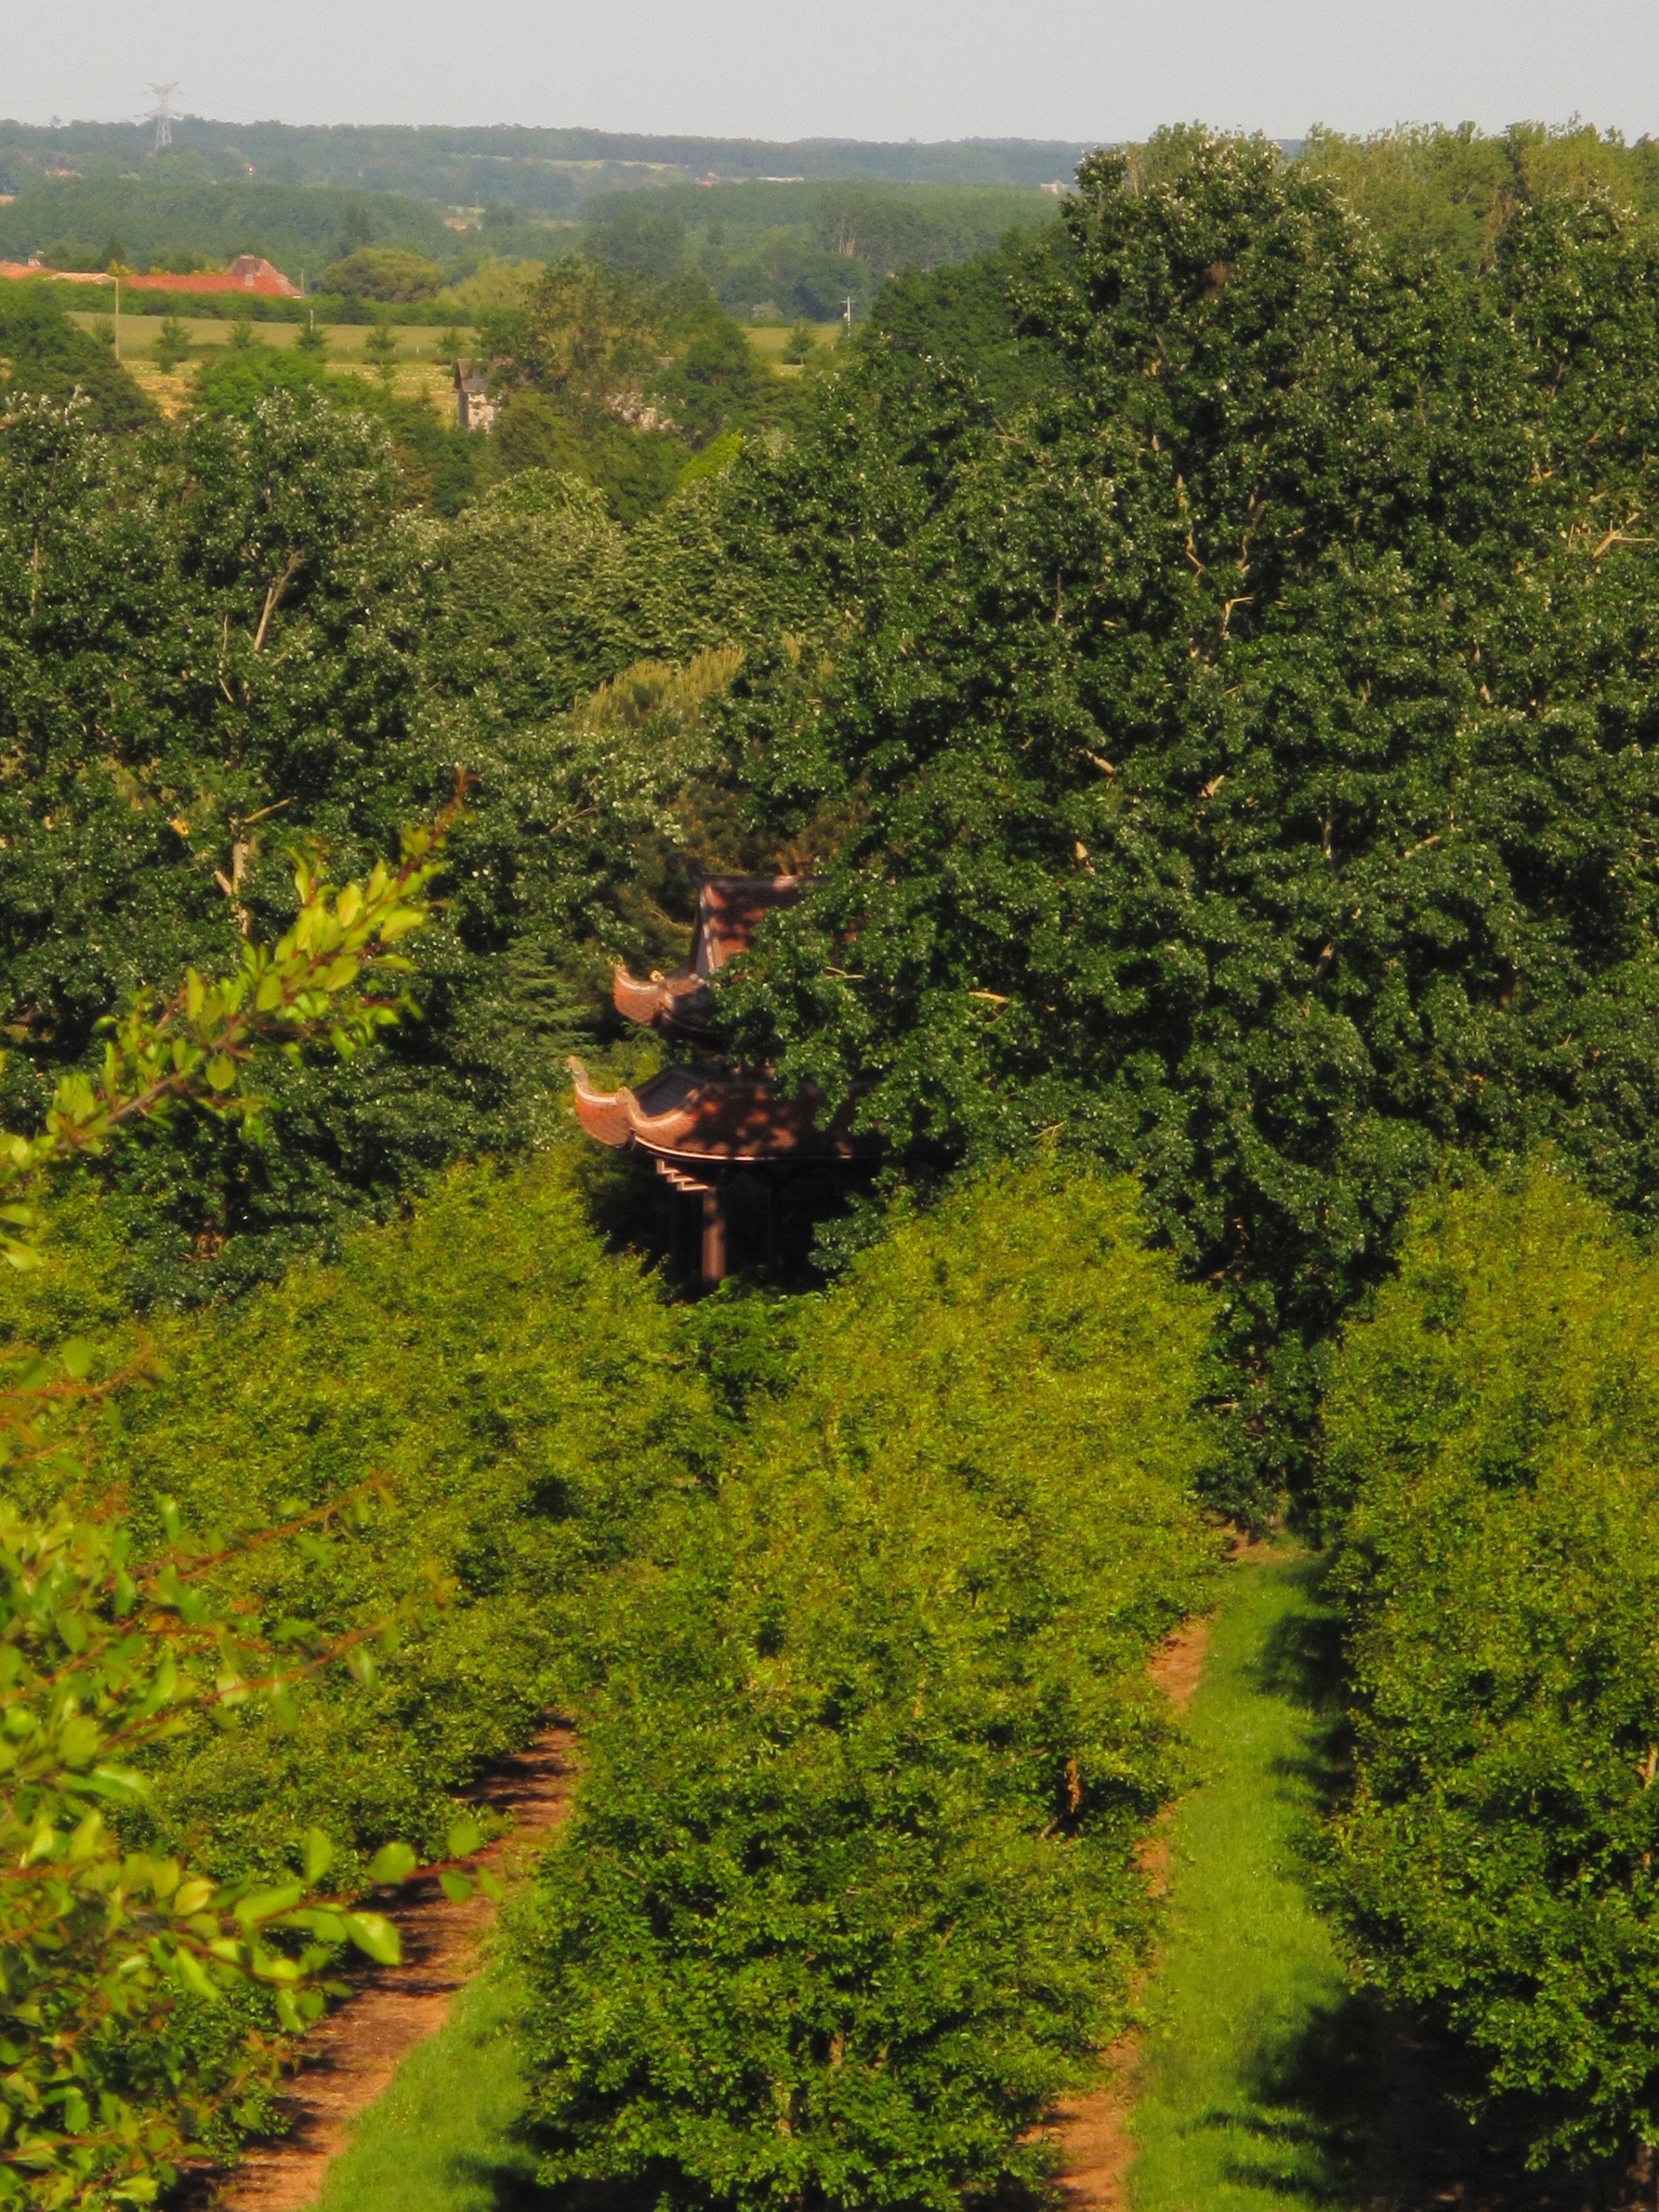 The orchard at Plum Village, with a pagoda roof peeking through the trees